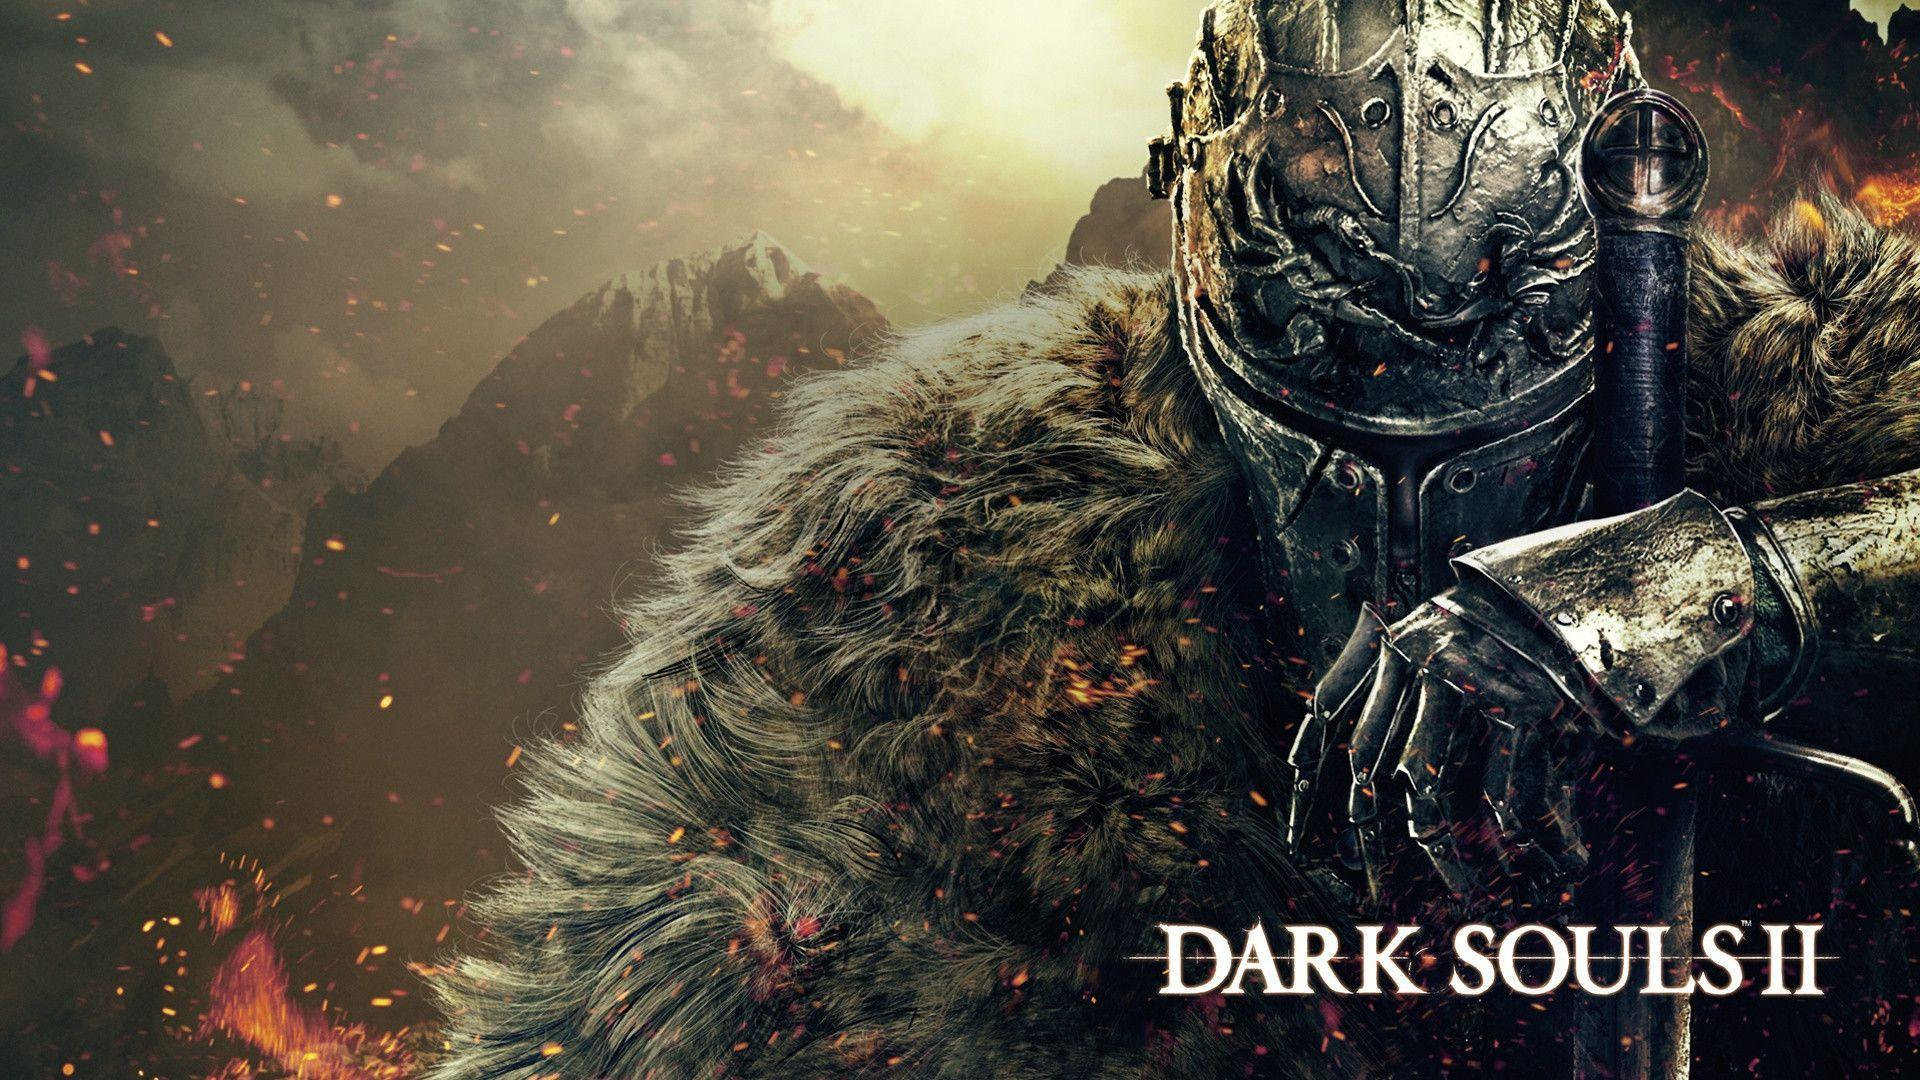 dark souls wallpaper breaking - photo #6